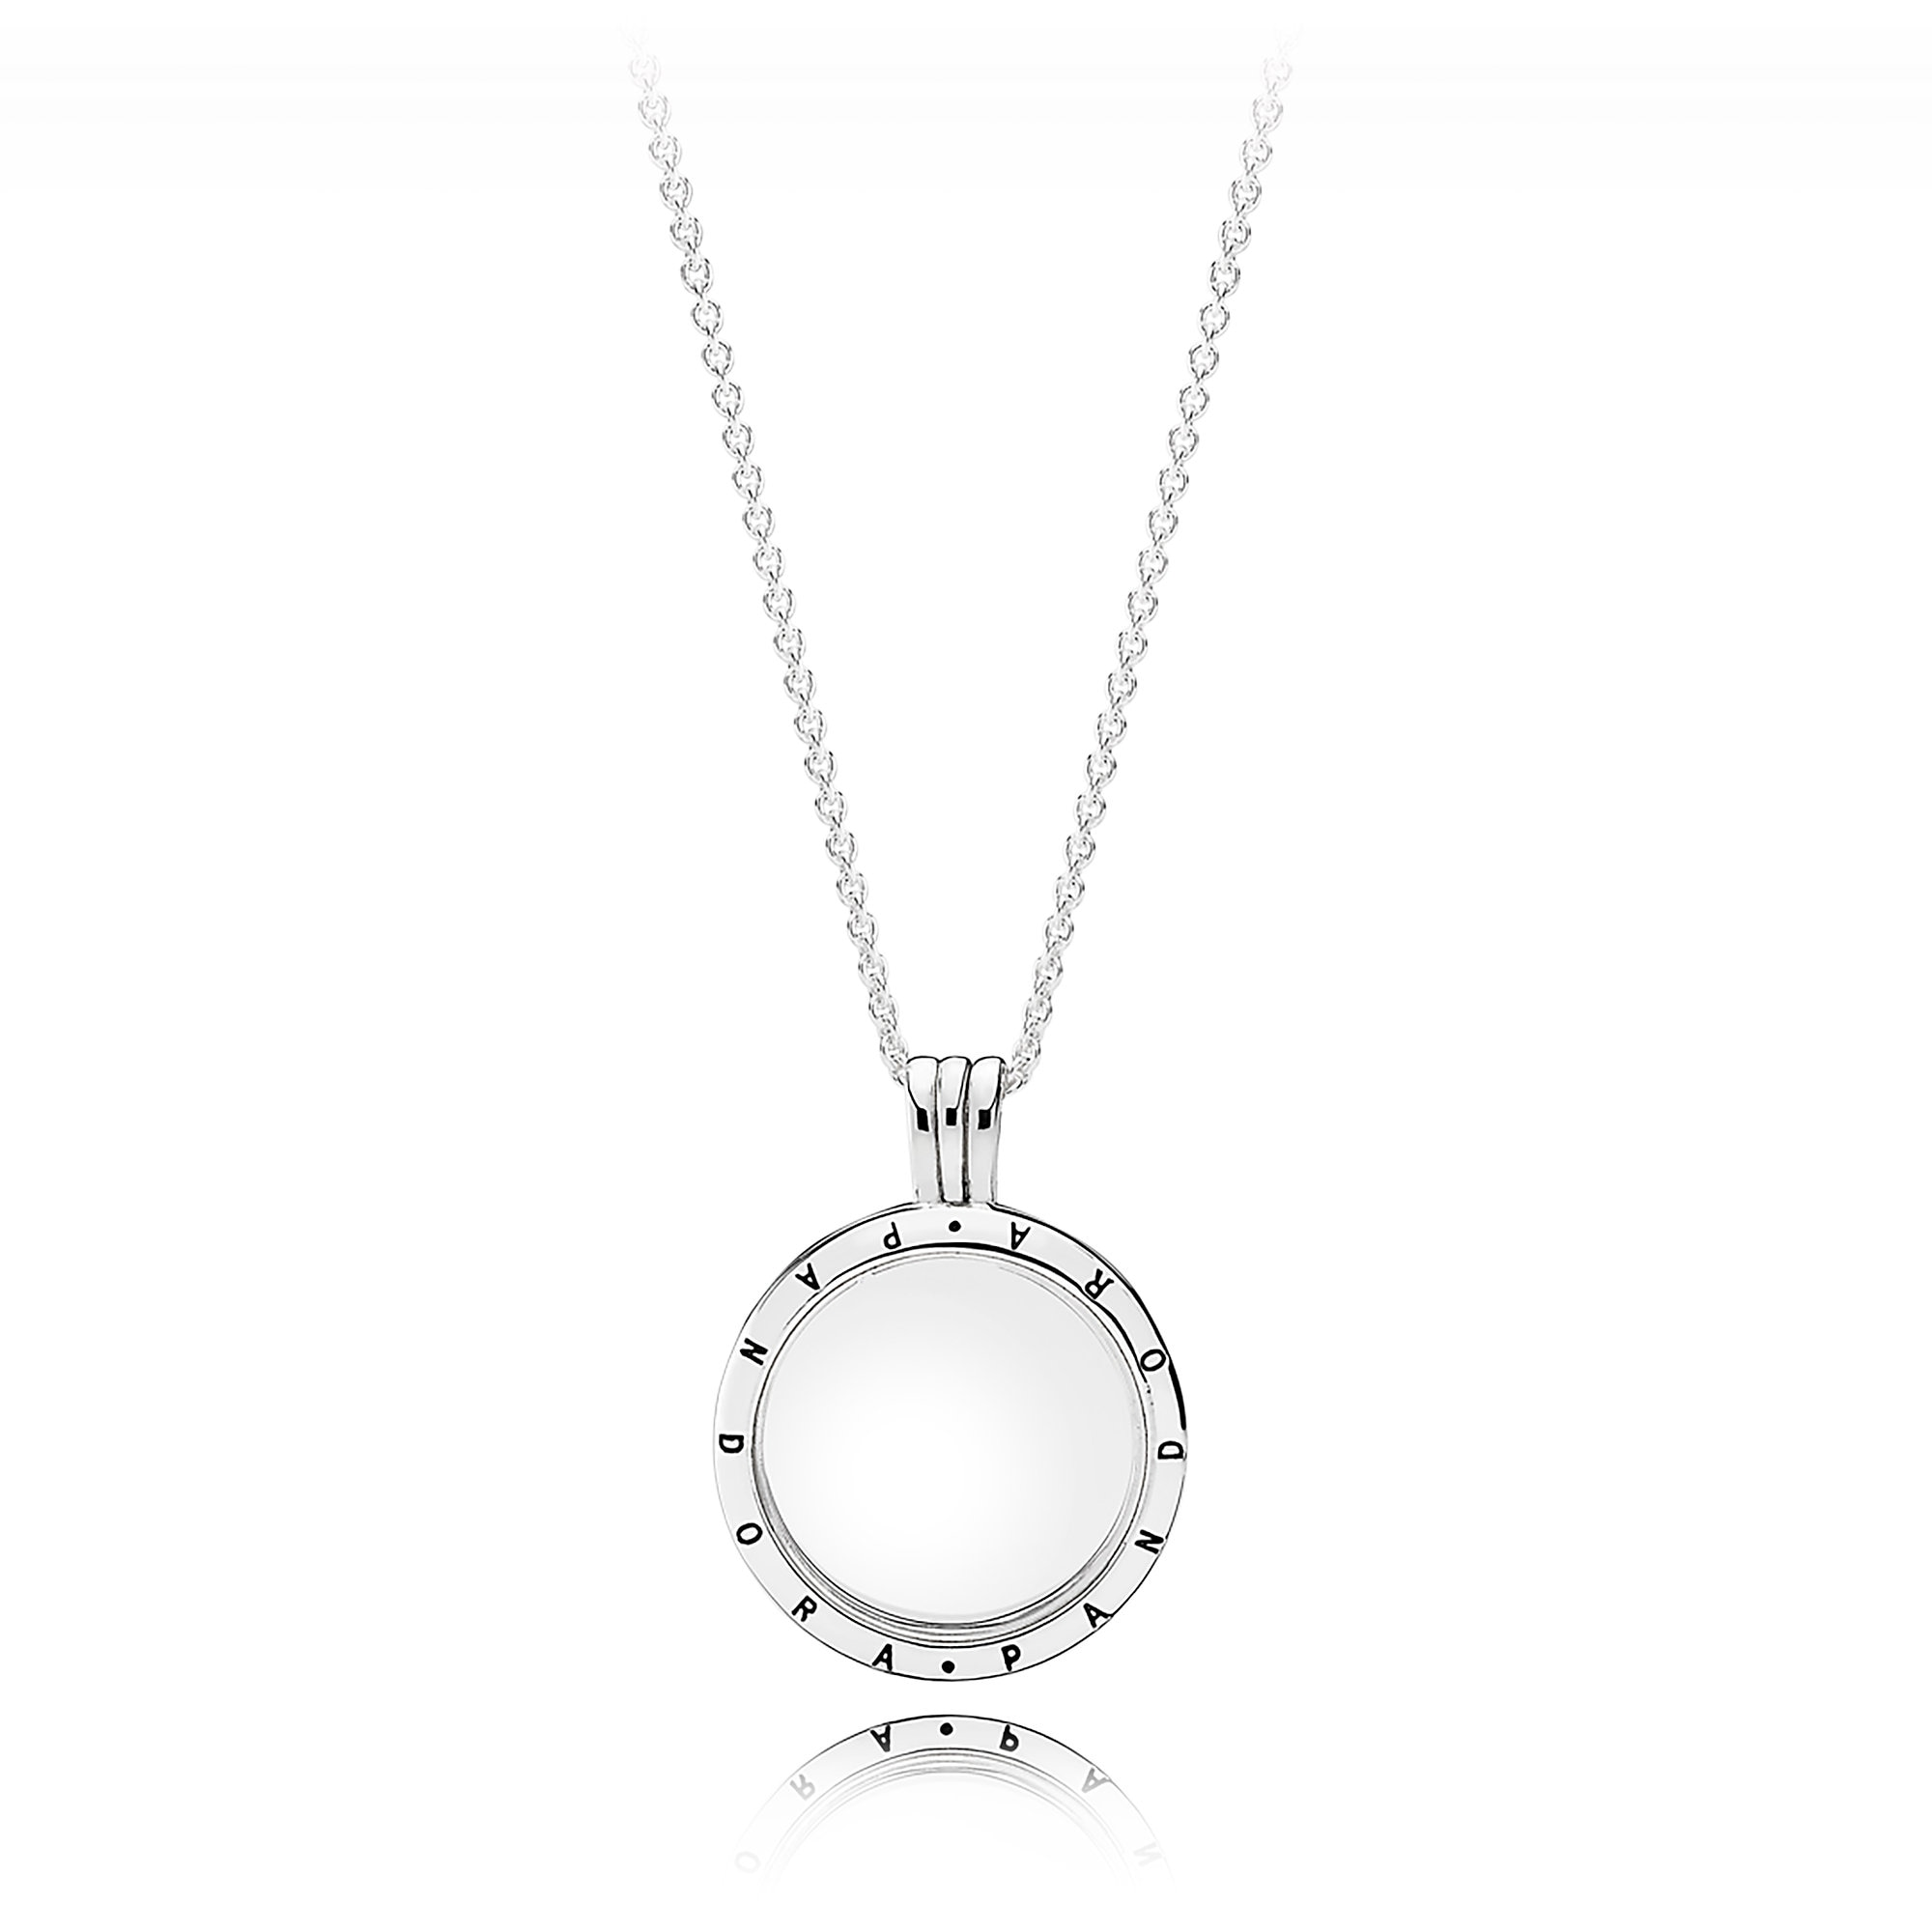 lockets papier large charm silver necklace sterling studio silhouette products le classic locket